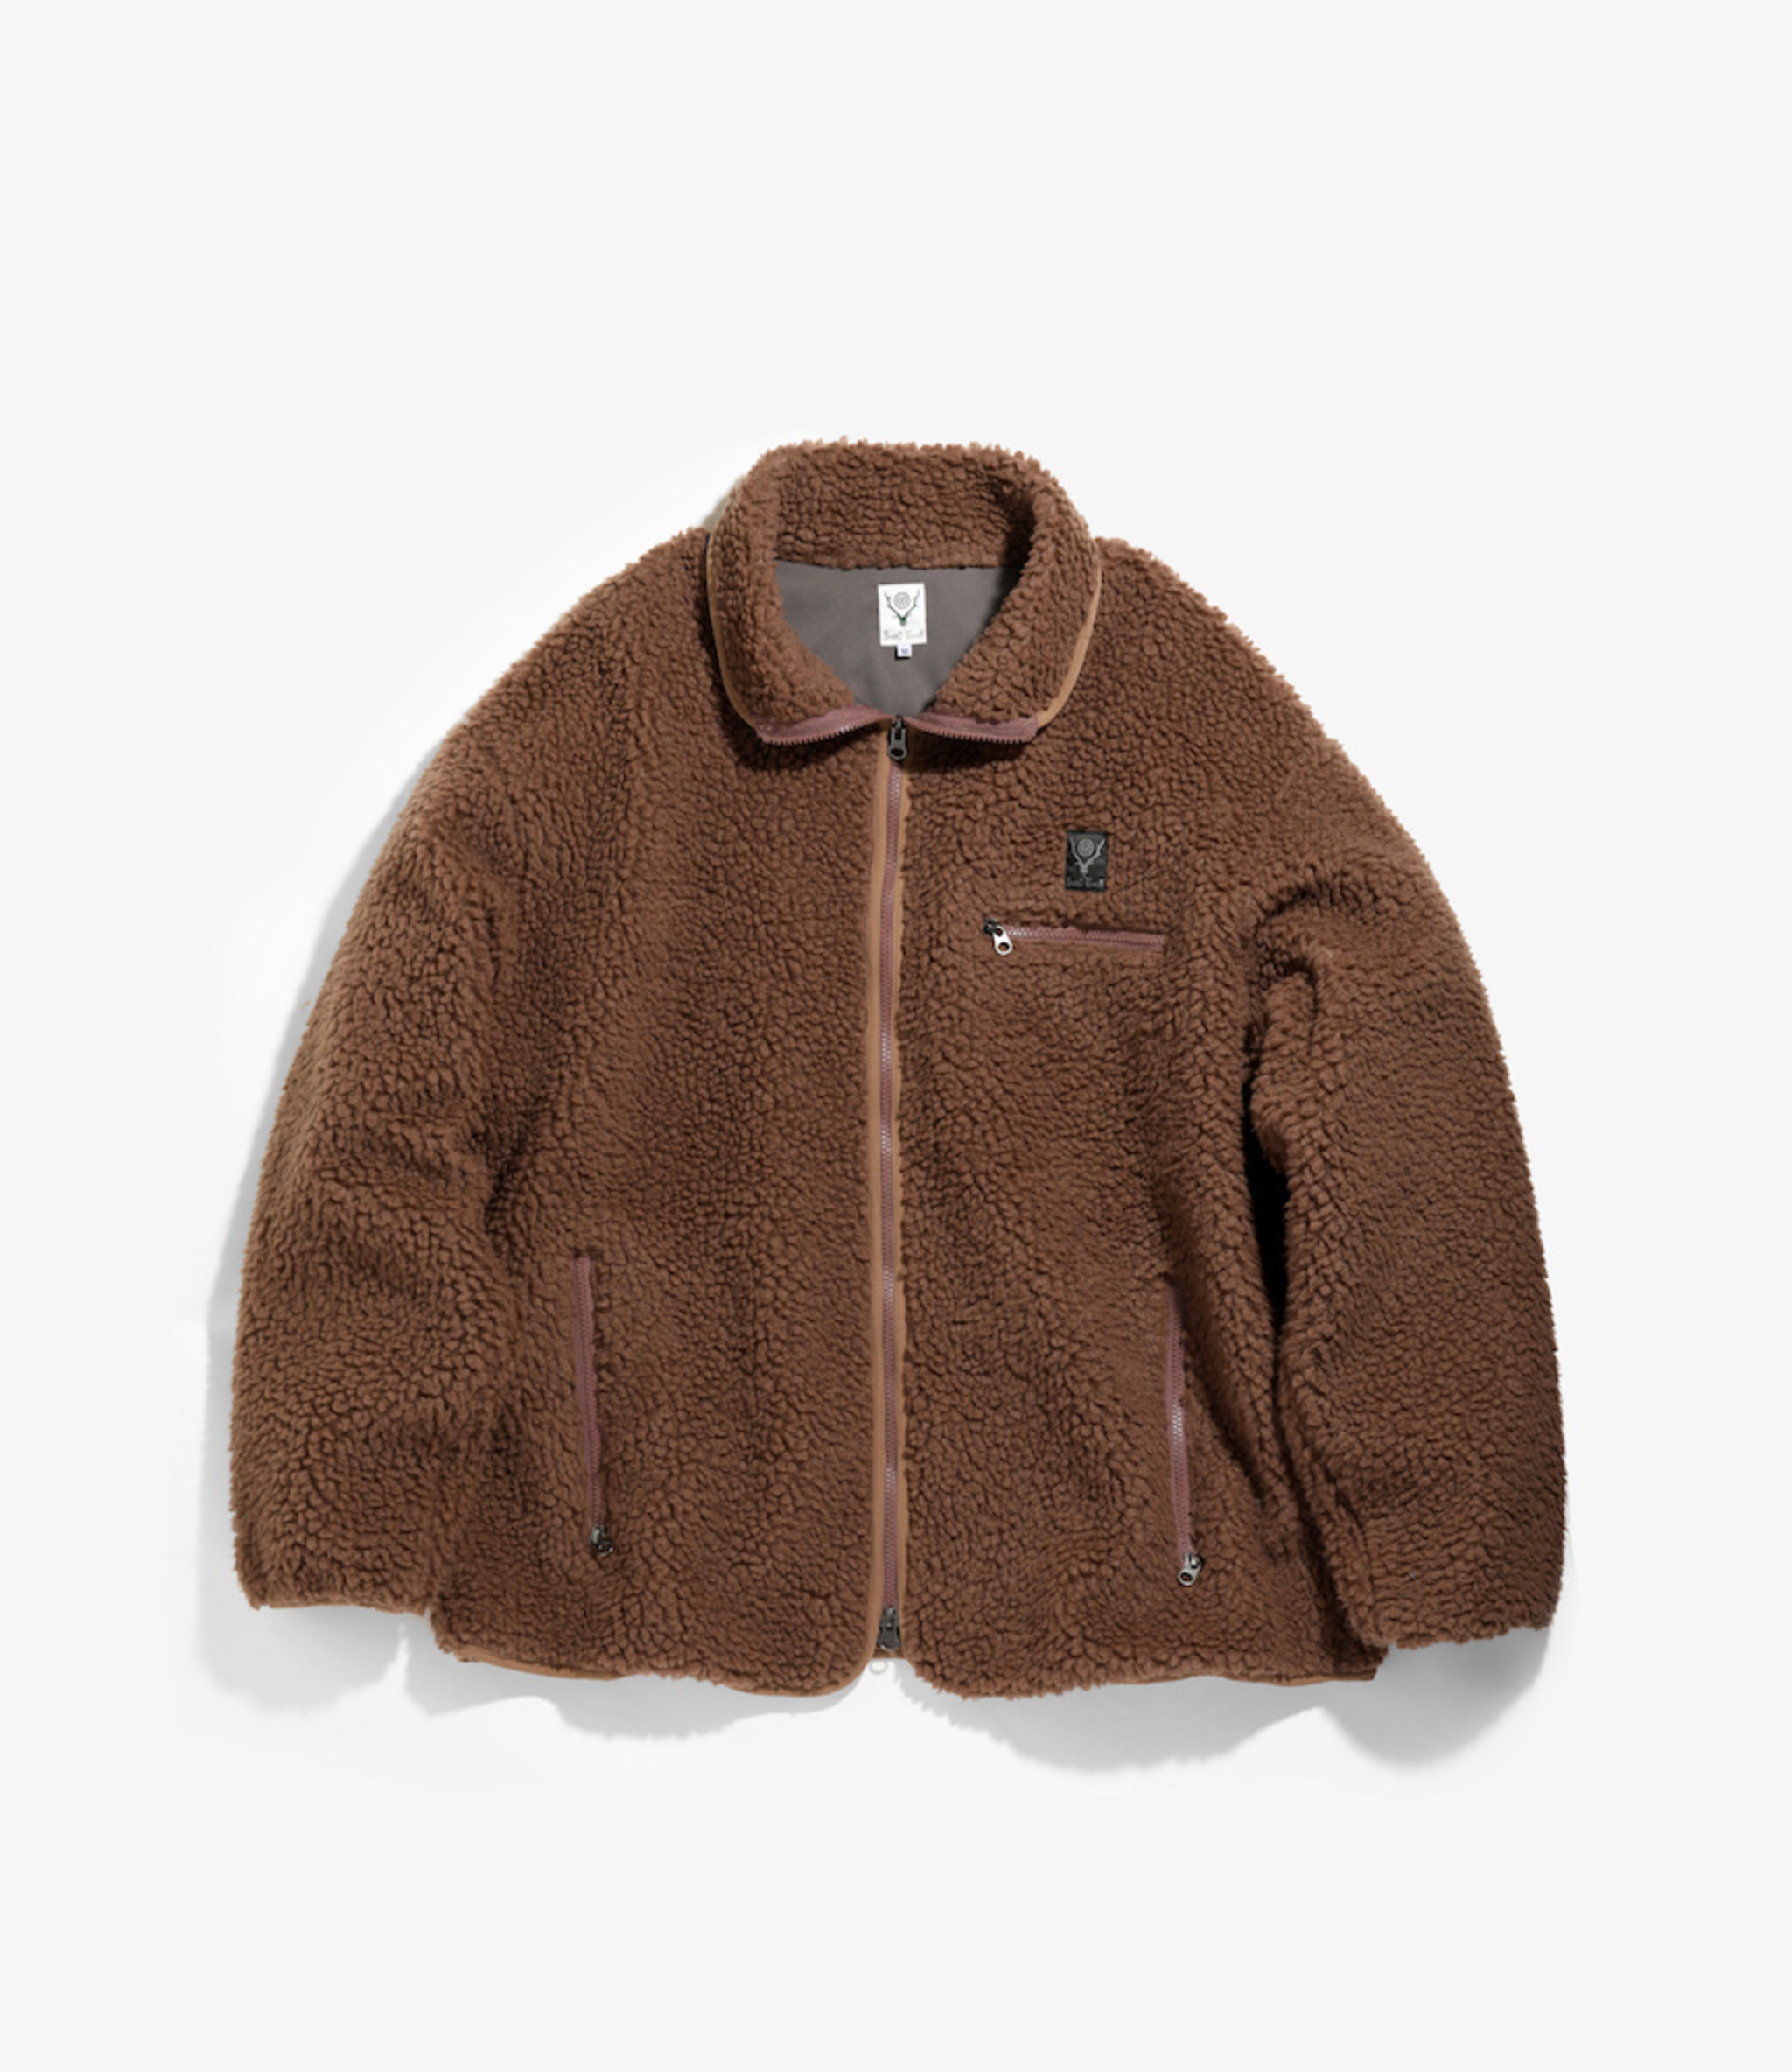 South2 West8 Piping Jacket Synthetic Pile - Mocha